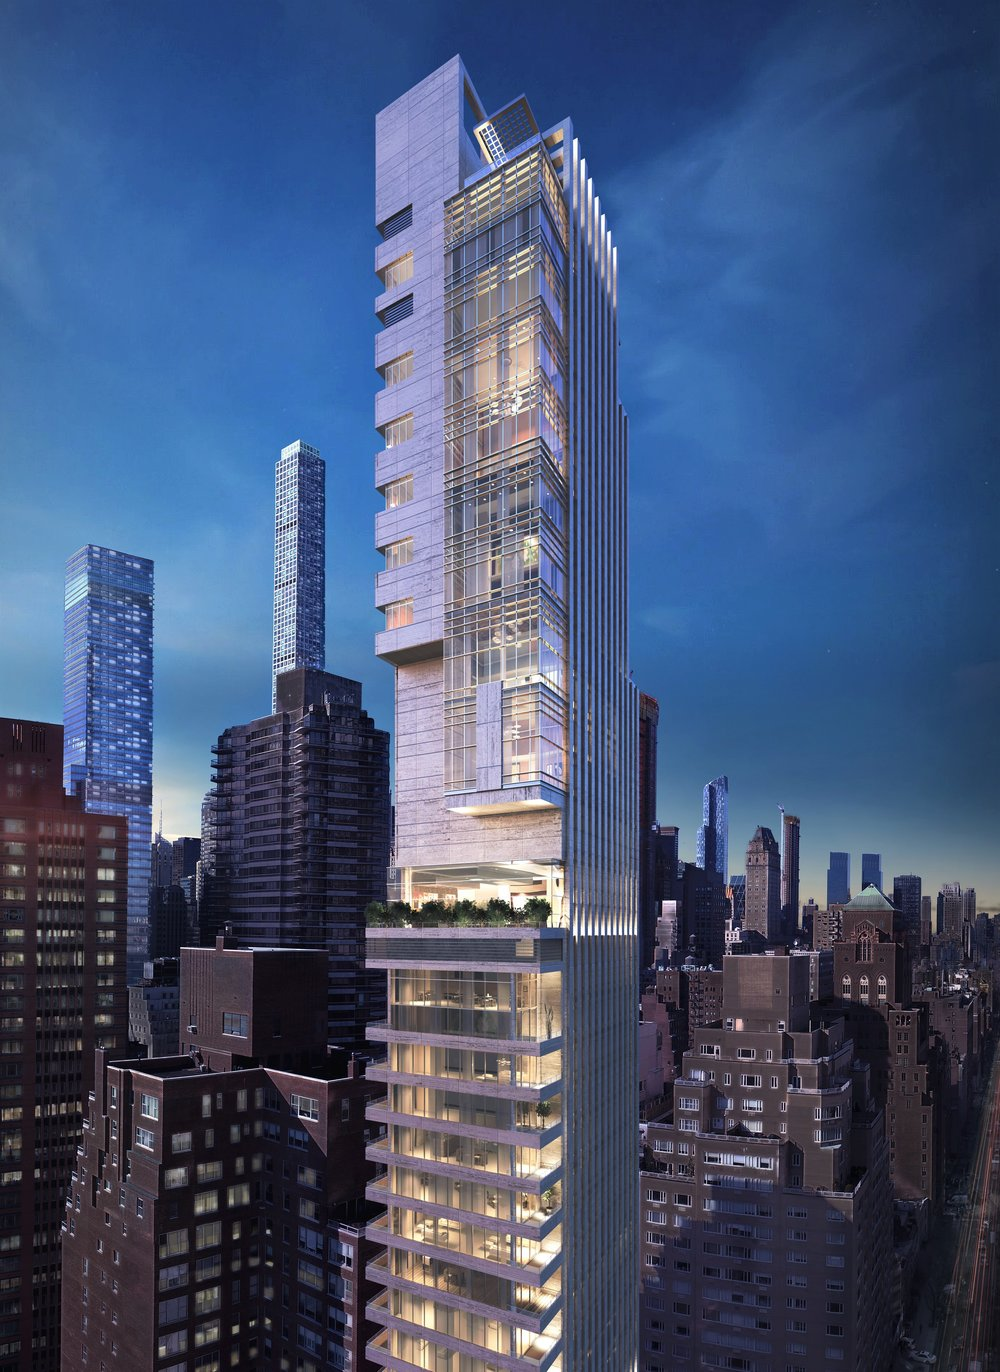 1059 Third Avenue - New York, NY